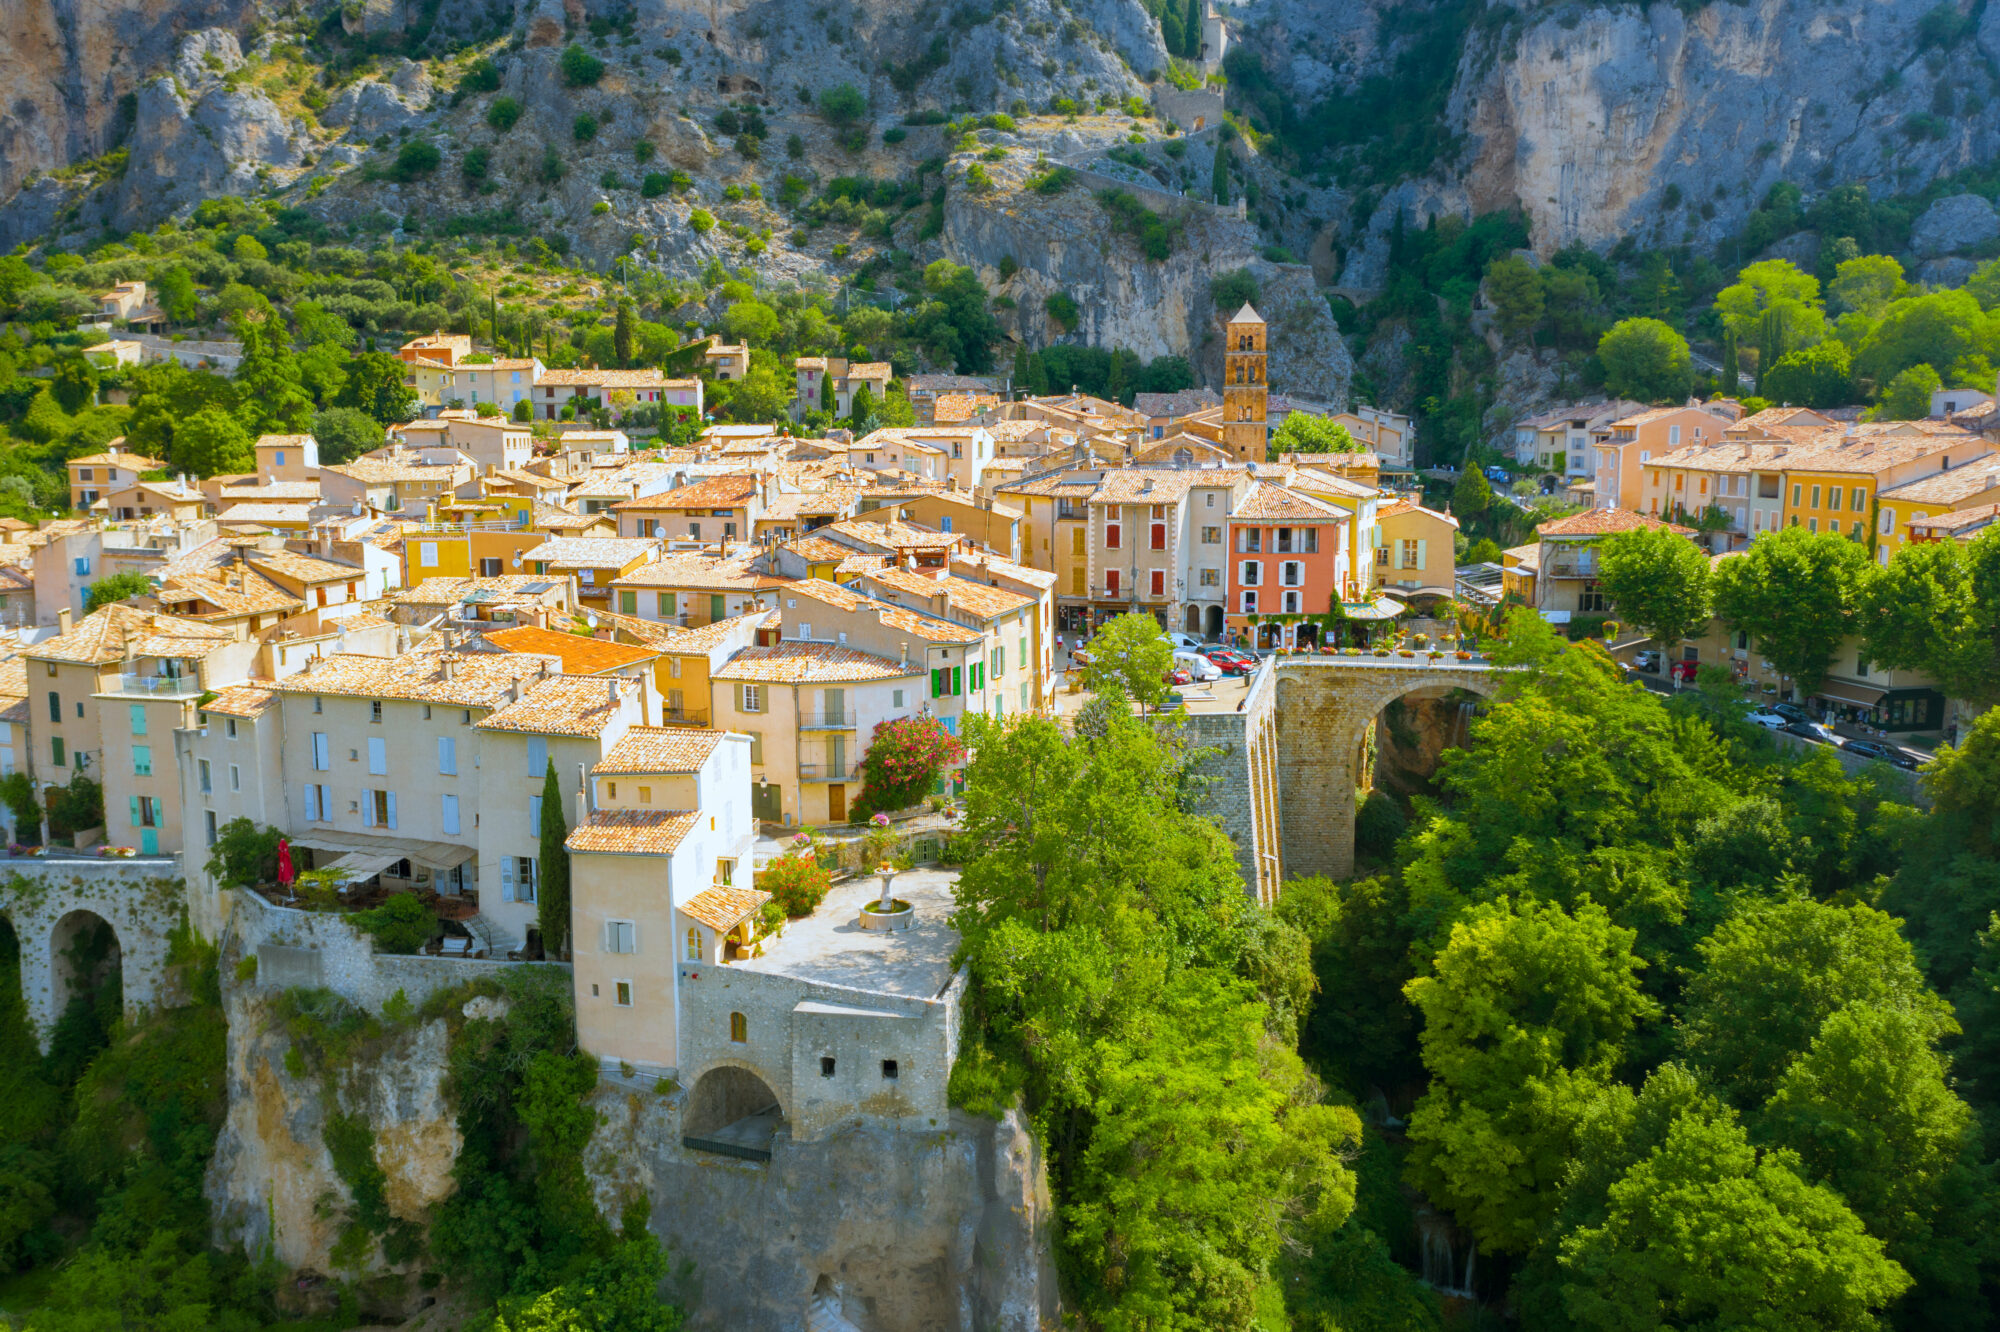 The Village of Moustiers-Sainte-Marie, Provence, Southern France